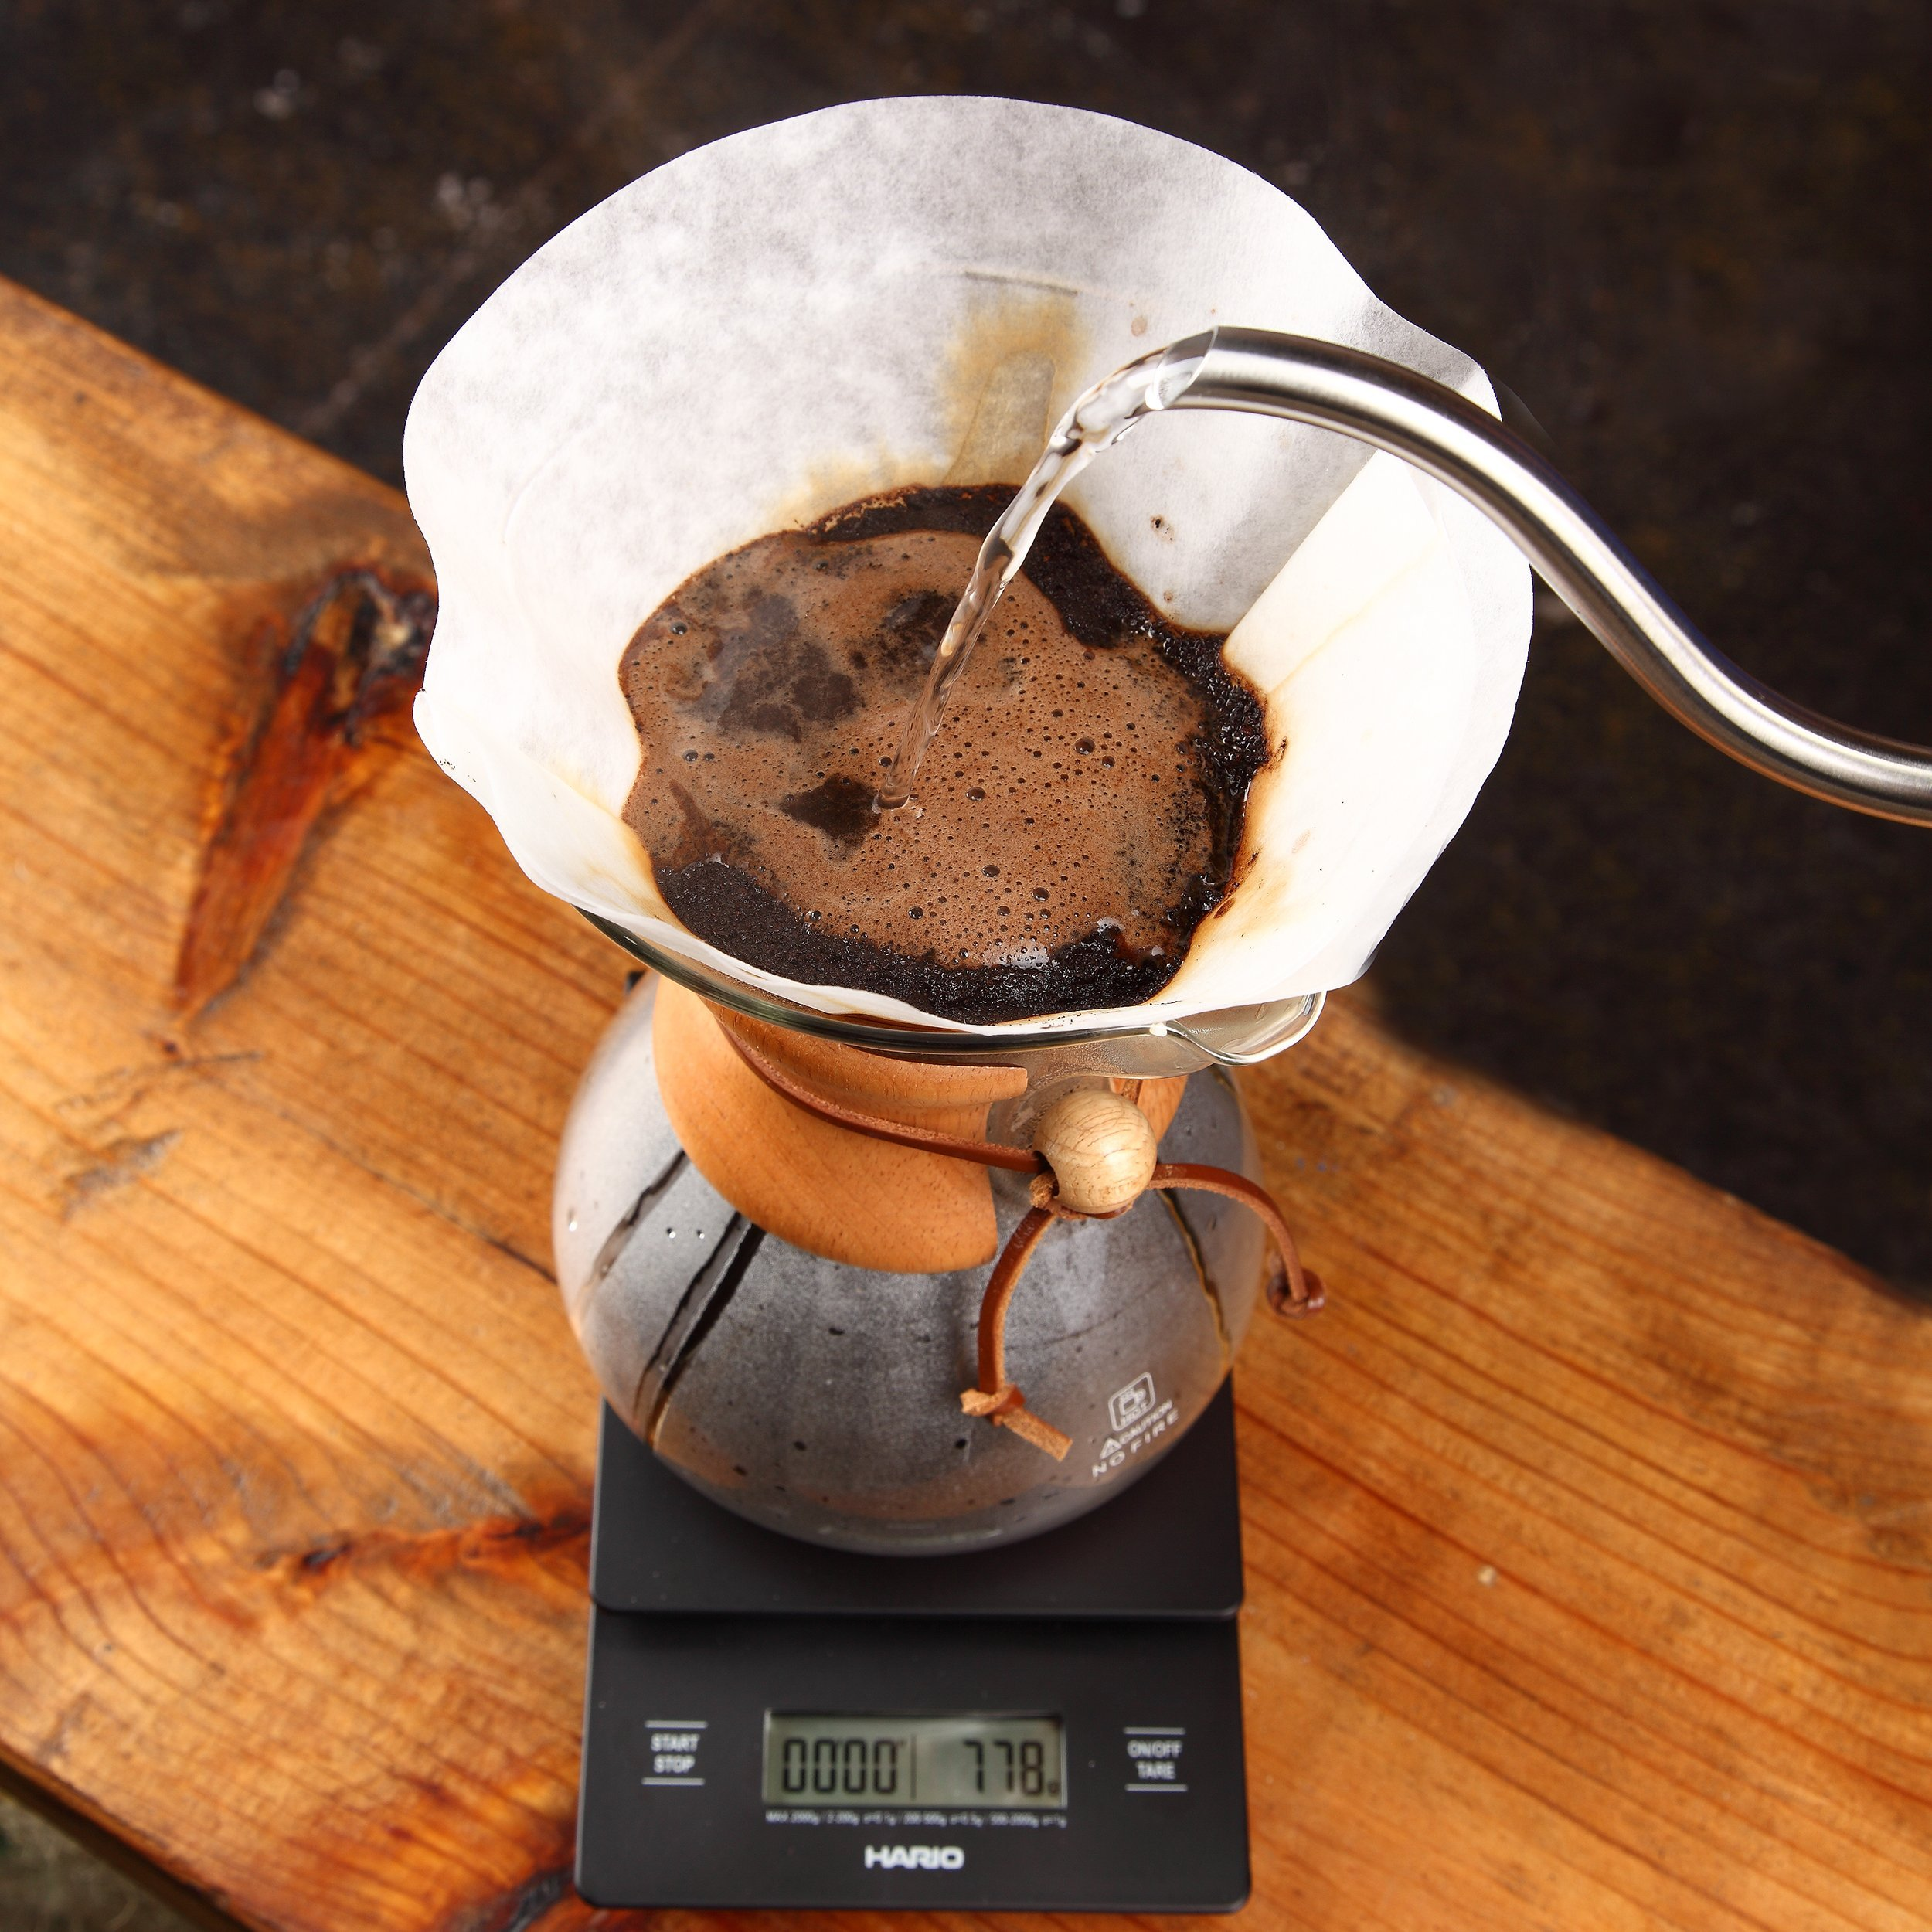 Pour Over Coffee Maker   Classic Hand Drip Brewer for Paper Filter   Hand Crafted Strong Borosilicate Glass with Lid, Easy Clean and Better Coffee by LePrem (Image #4)